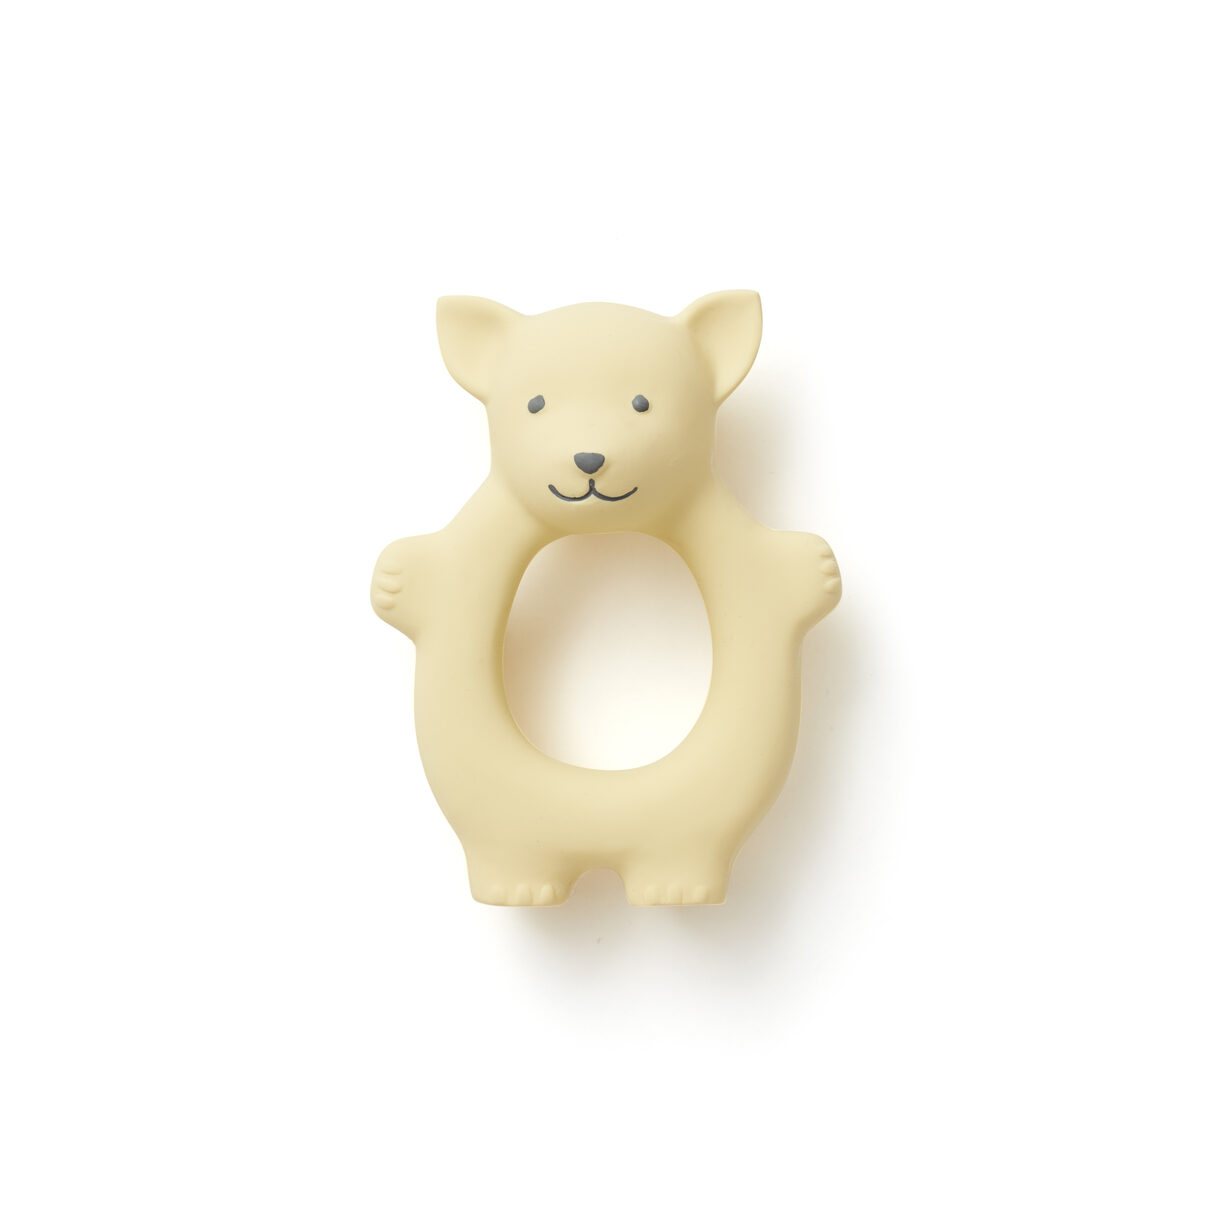 Kids Concept - Teether Fox in Natural Rubber - Yellow (1000458)